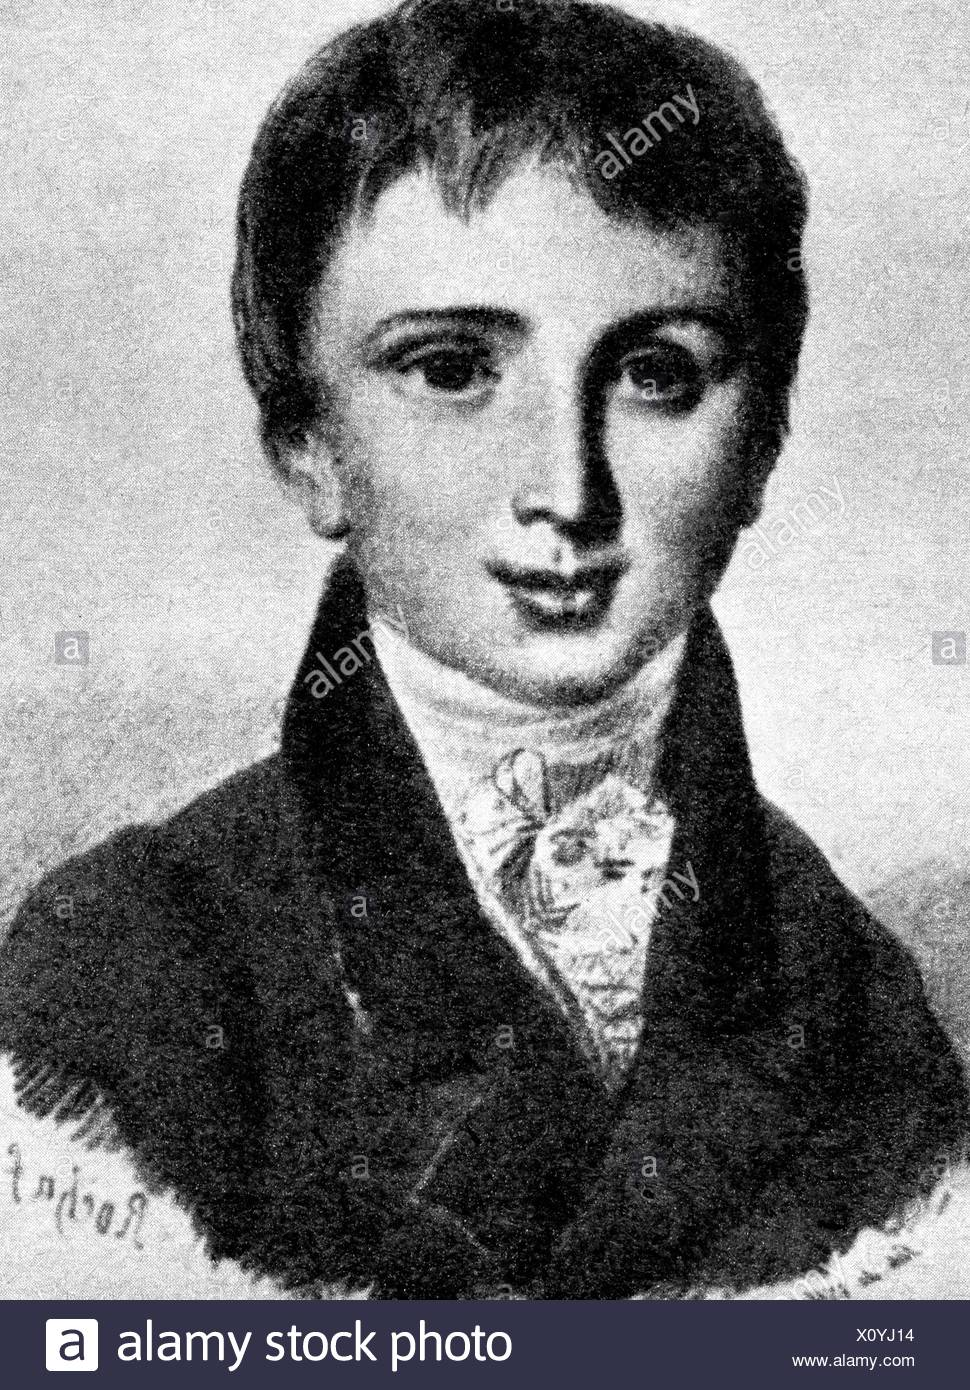 Liszt, Franz, 22.10.1811 - 31.7.1886, Hungarian composer and pianist, as child, eleven years old, 1823, , Additional-Rights-Clearances-NA - Stock Image